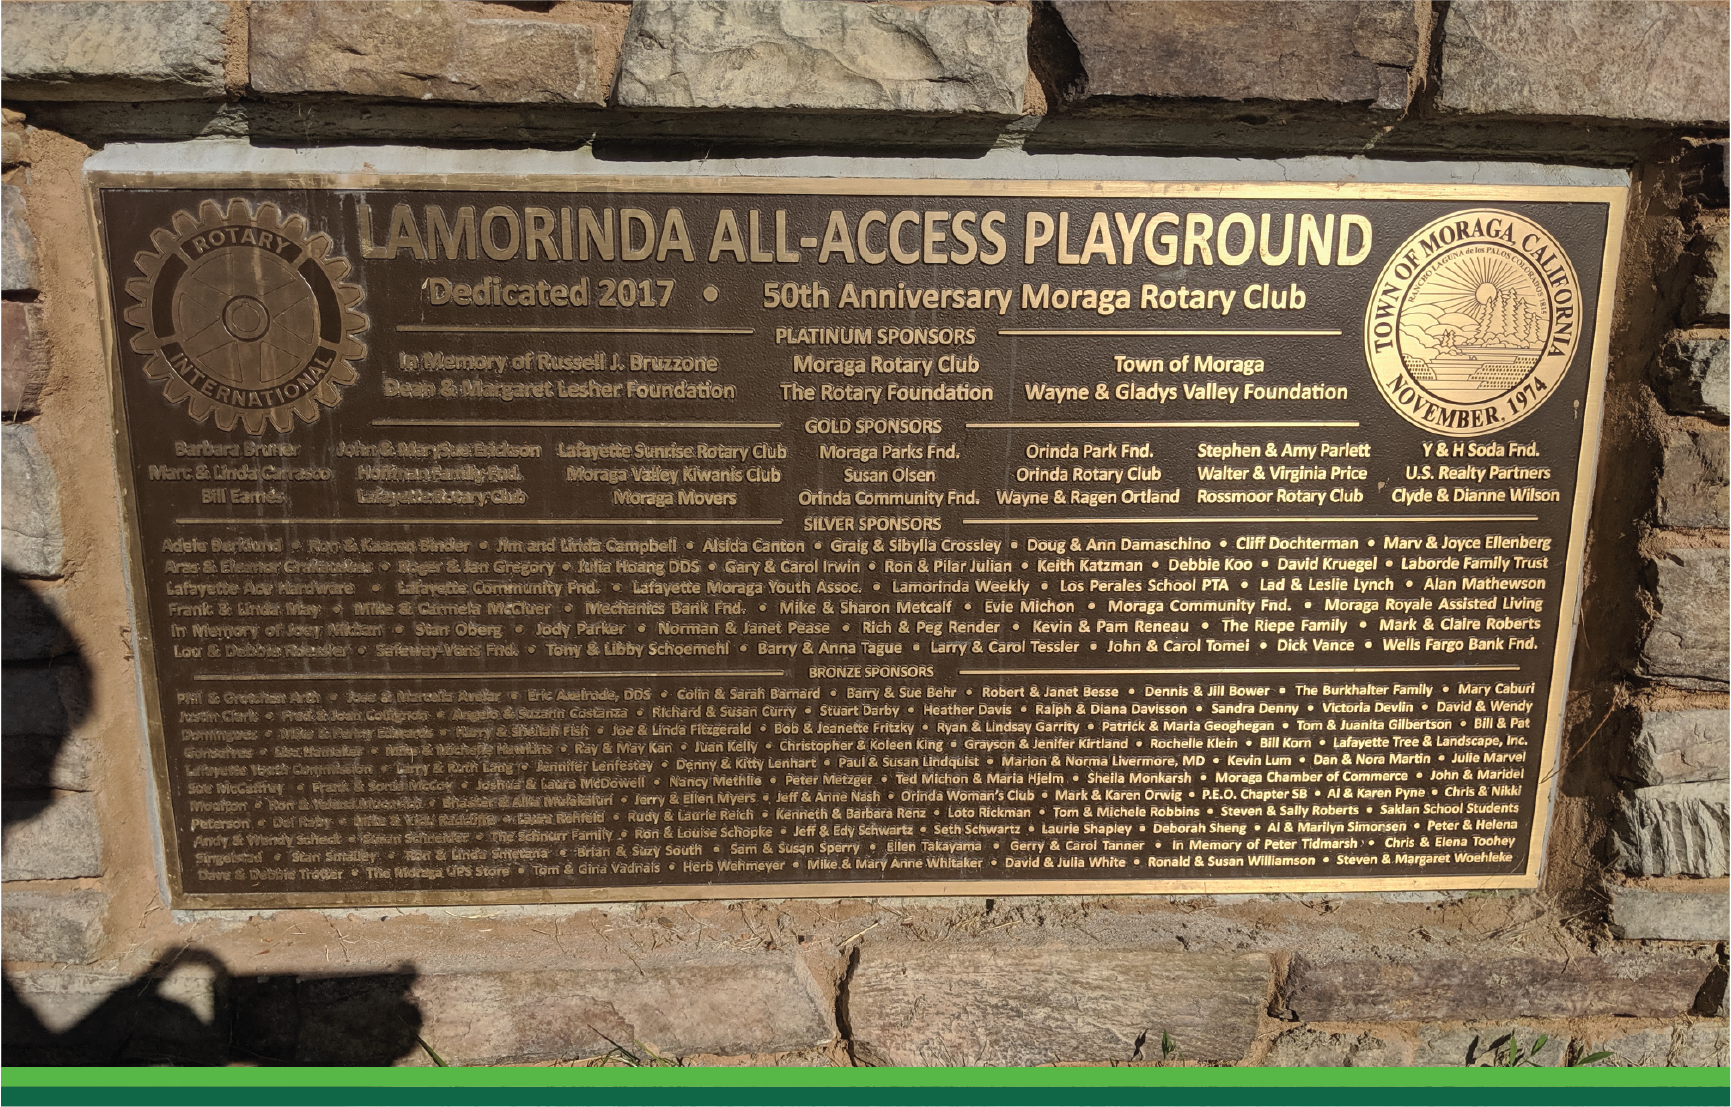 Outdoor Signage at Lamorinda All Access Playground